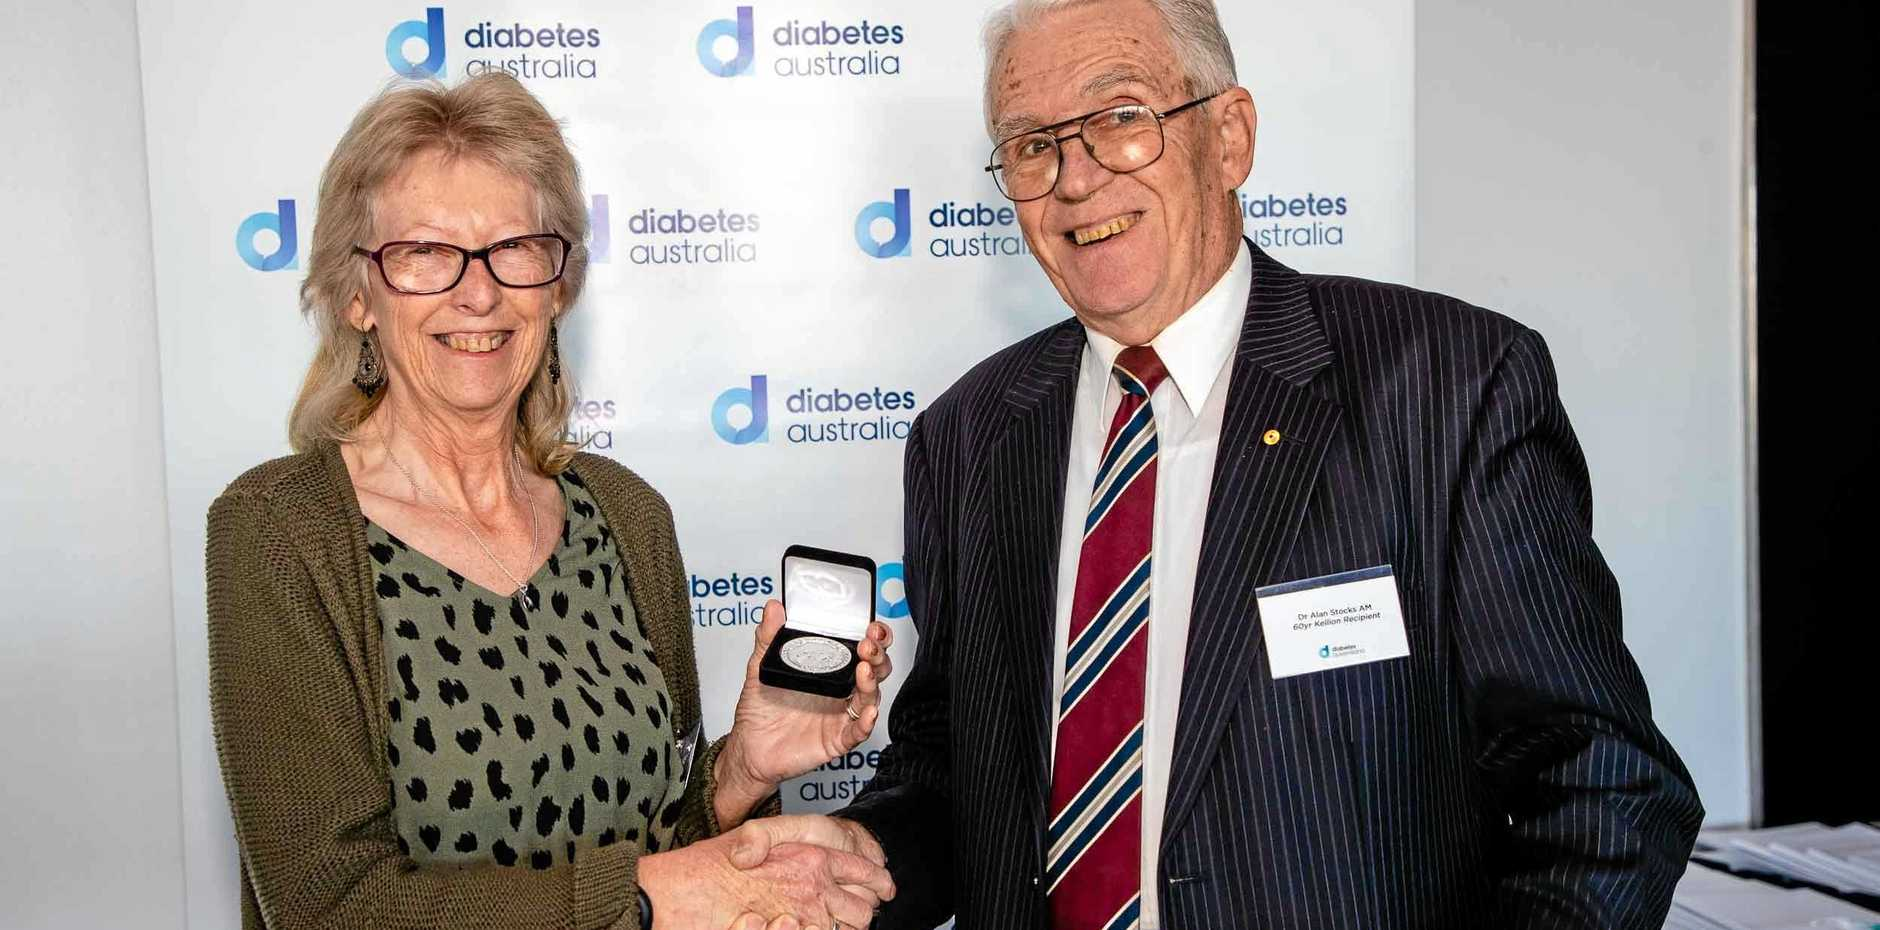 LIFE OF RESILIENCE: Poona resident Nicola Alletag is presented with her Kellion Medal for living with type-1 diabetes for 50 years by Dr Alan Stocks AM. Maryborough resident Naomi Richardson was also presented with the same accolade.